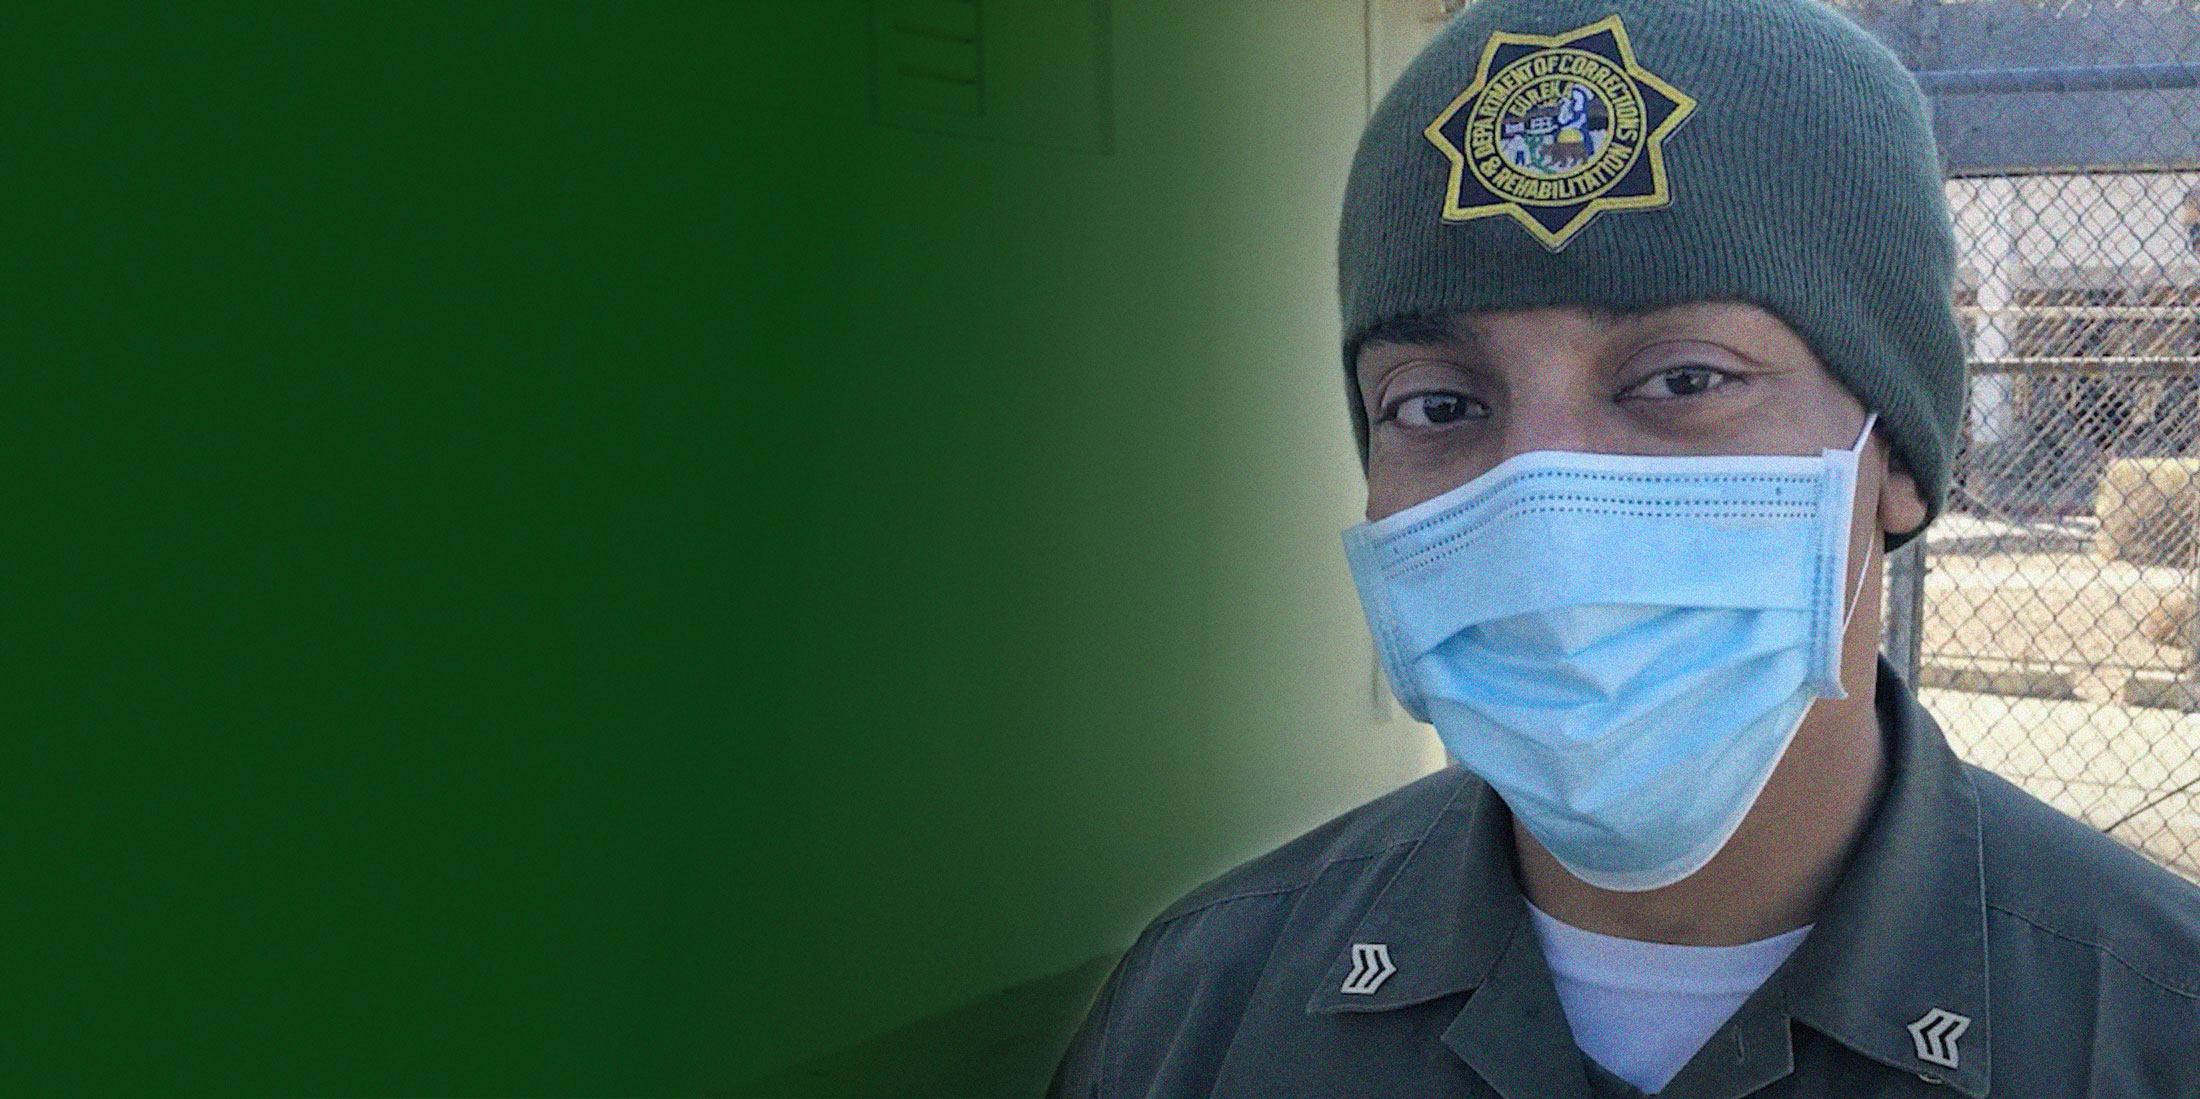 Correctional Officer wearing a mask